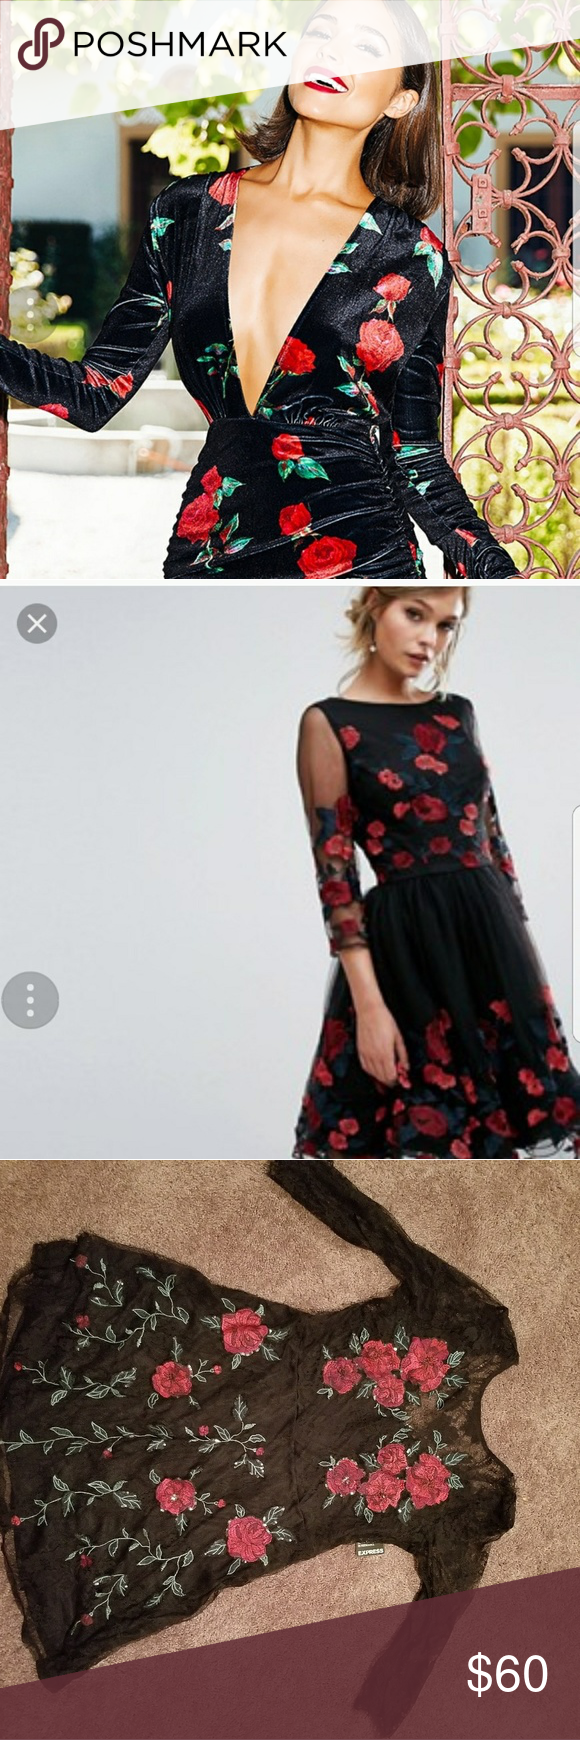 New W Tags Embroidered Lace Dress Red Floral Black Embroidered Lace Dress Red Lace Dress Lace Dress [ 1740 x 580 Pixel ]